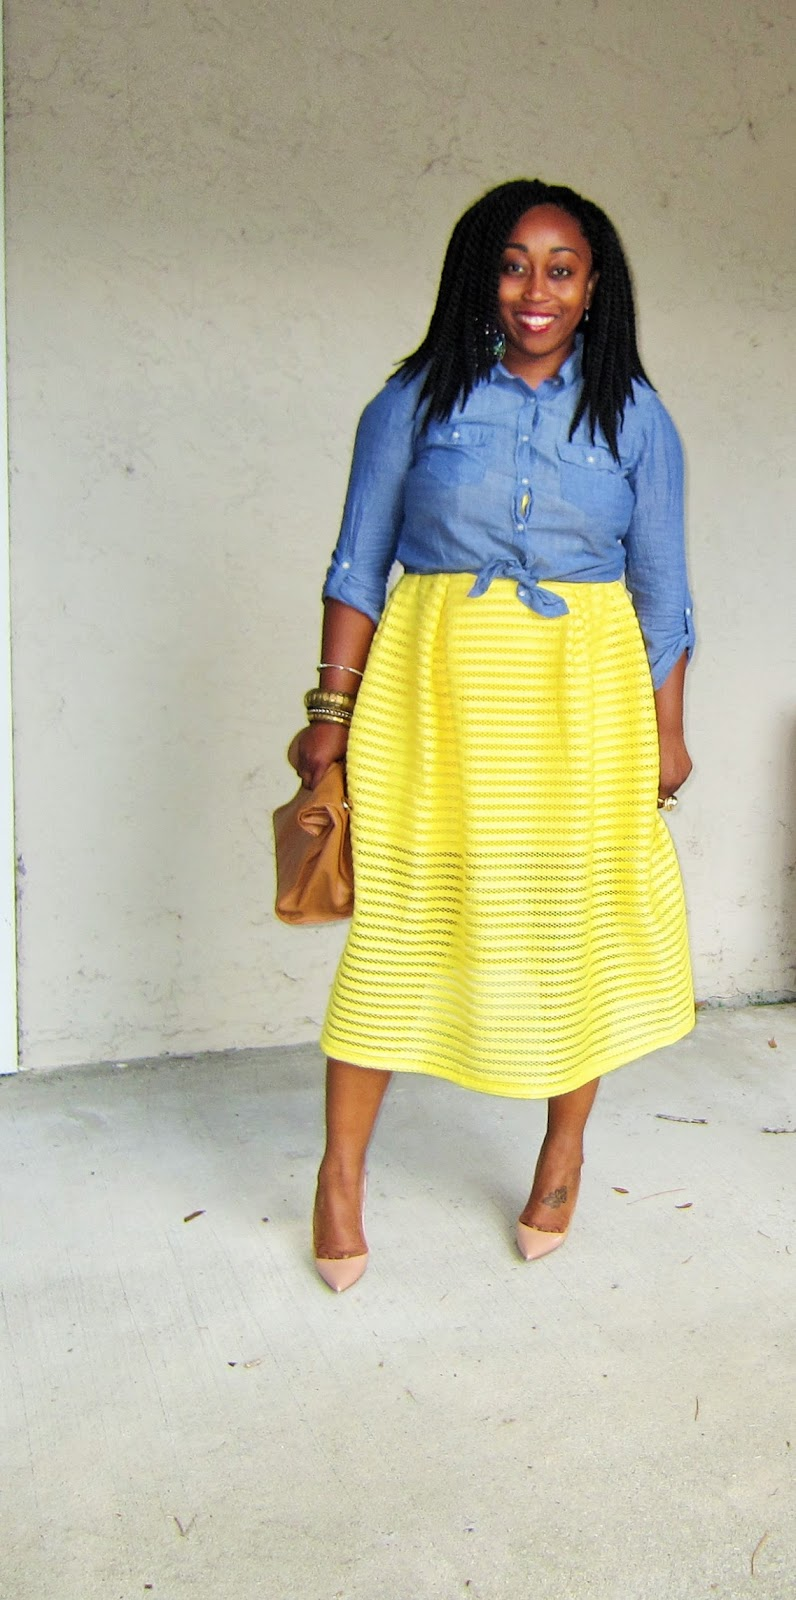 incredible denim and yellow outfit dress